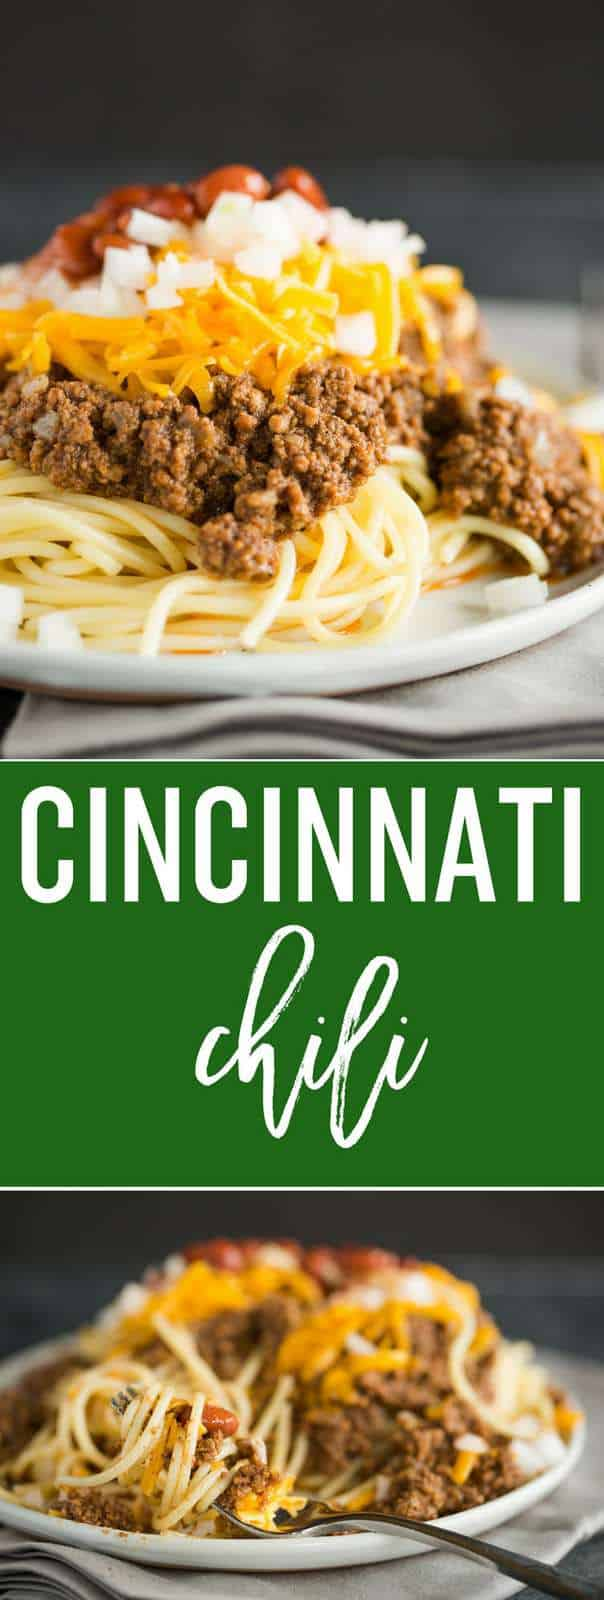 Cincinnati Chili :: This easy midwestern classic is total comfort food! Slow simmered for 3 hours and served over spaghetti with shredded cheese, chopped onions, and chili beans, perfect cold weather food! #recipe #dinner #easy #chili #cooking #beef